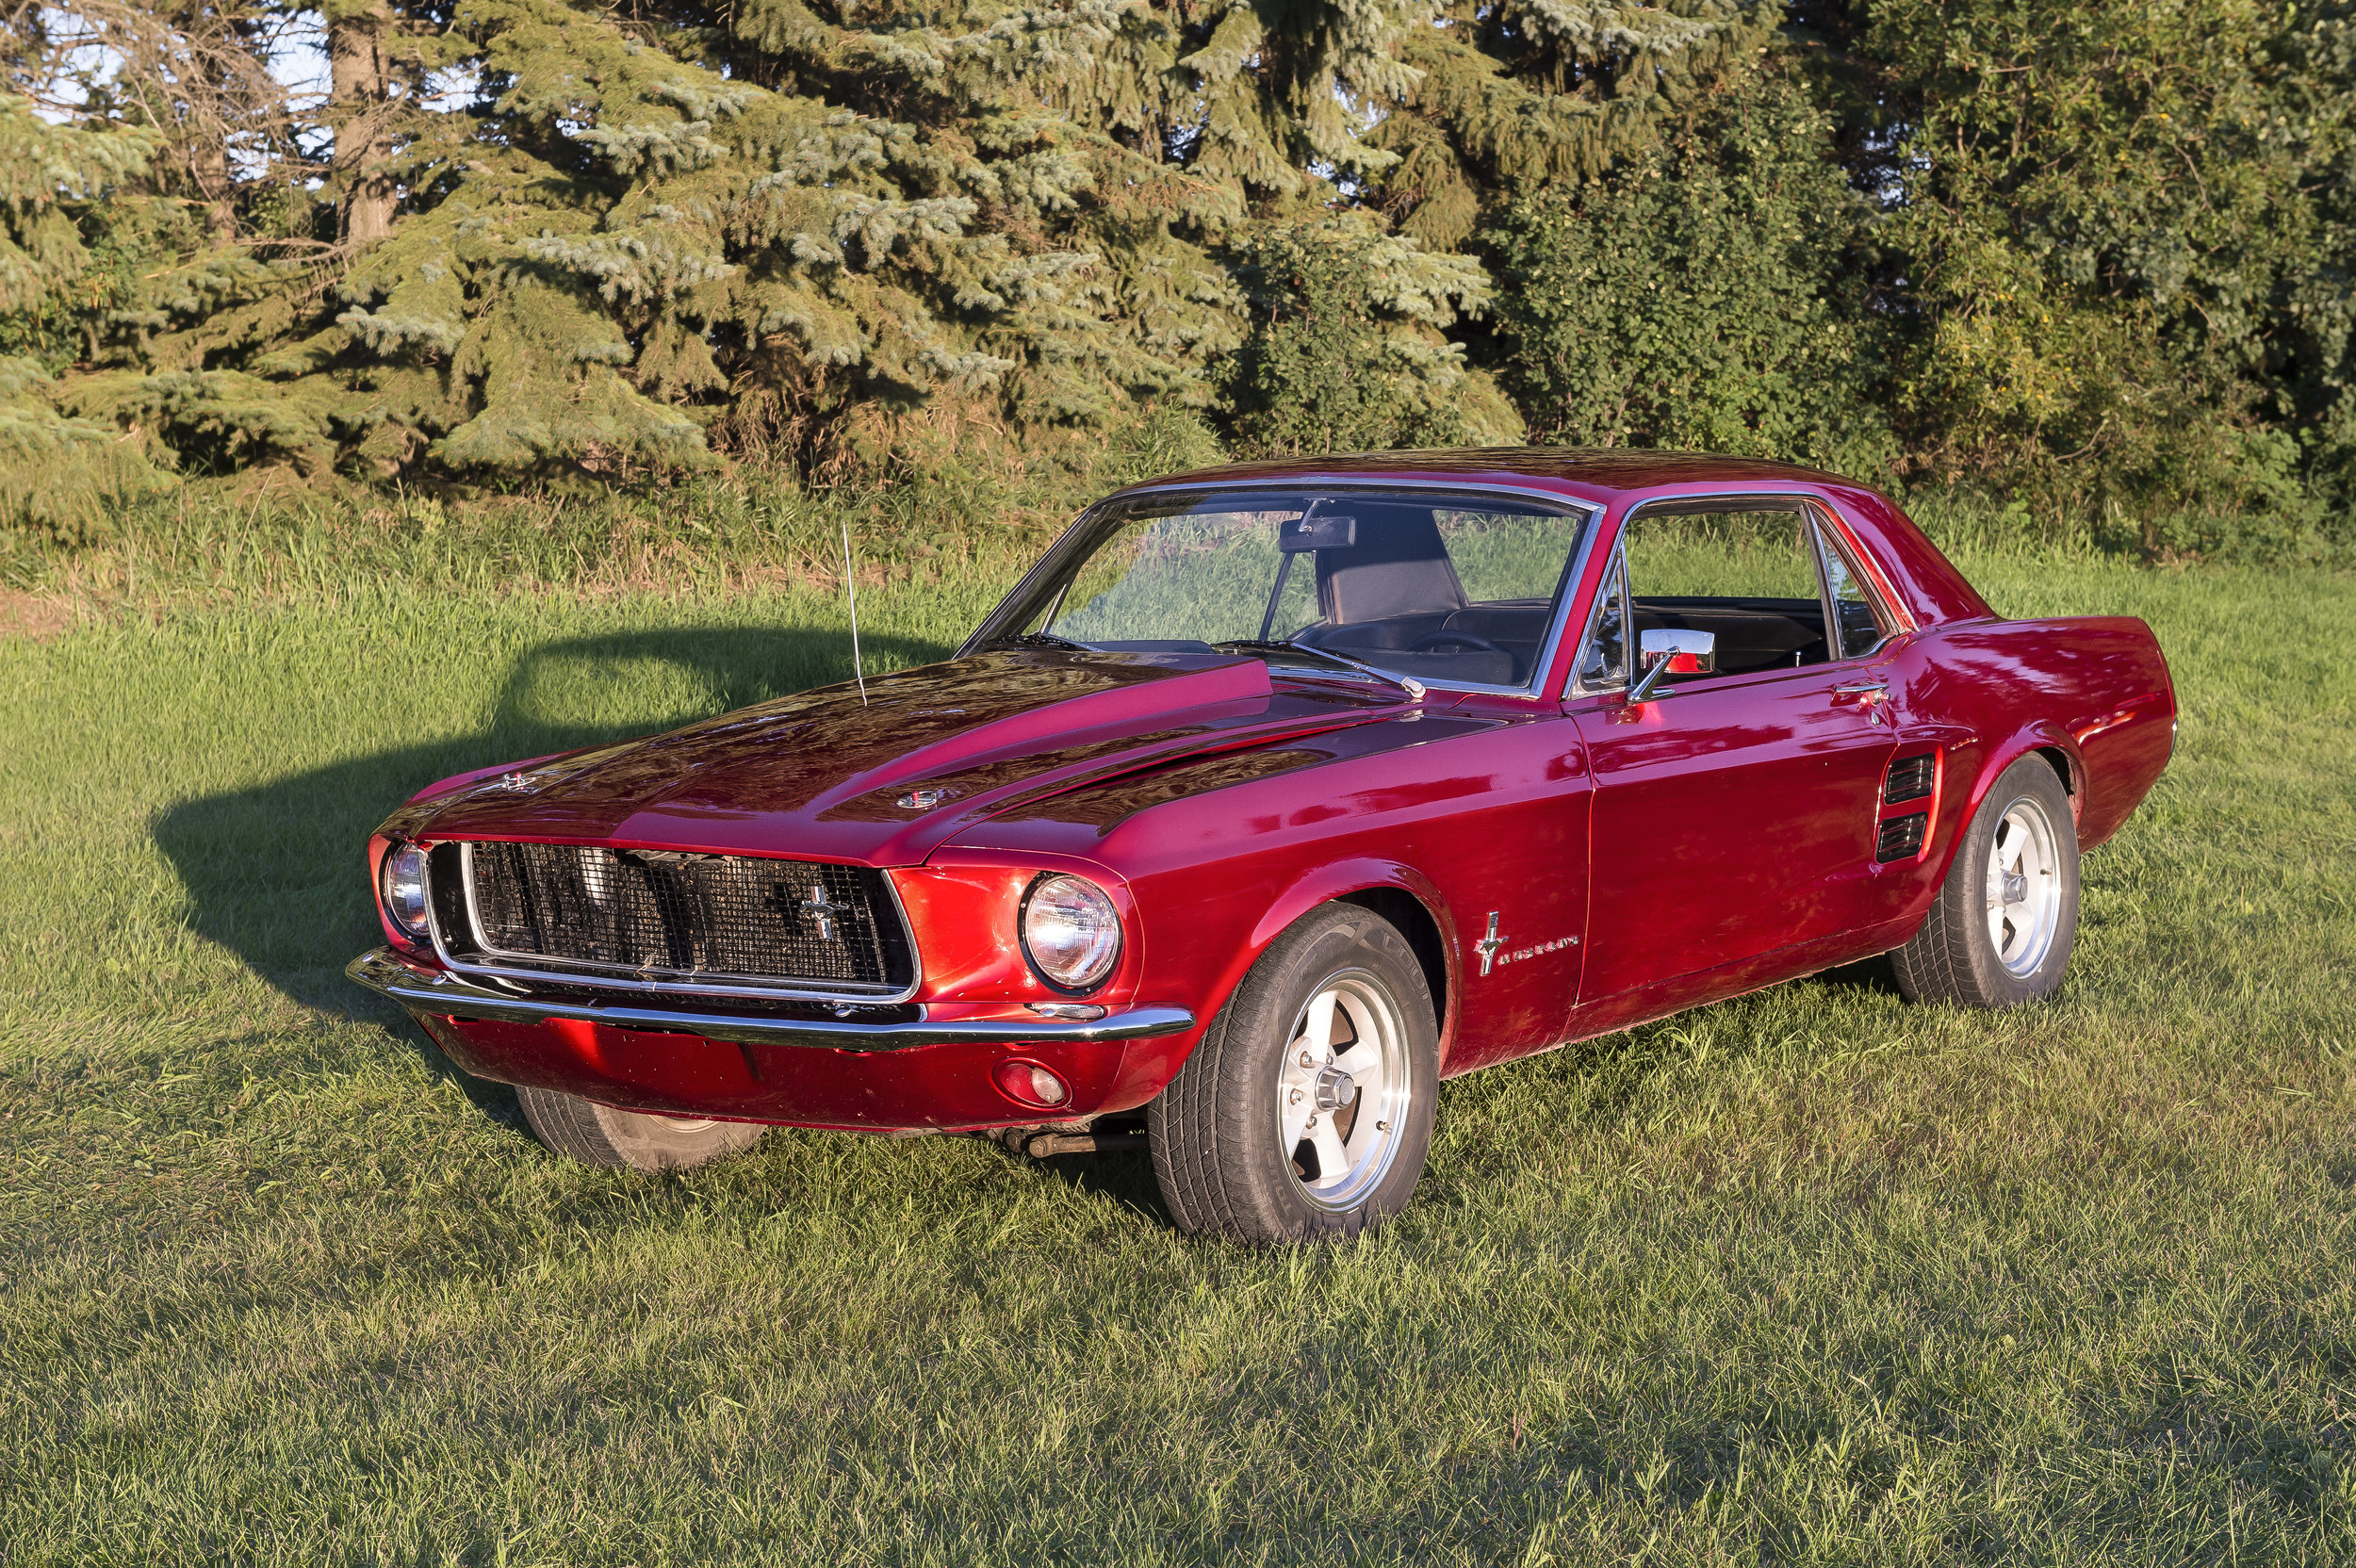 1967 Mustang Coupe   Car was purchased in Regina and underwent an extensive update. Originally silver in color, 15 weekends later it was a sparkling Wet n' Wild red. Powered by a 302 V8 from 95 SVT. The Cam and Carb have been upgraded and backed by a C6 tranny. You will see this classic car and others at Just Kruzin Weekly Kruz Nights throughout Spring, Summer and Fall seasons.